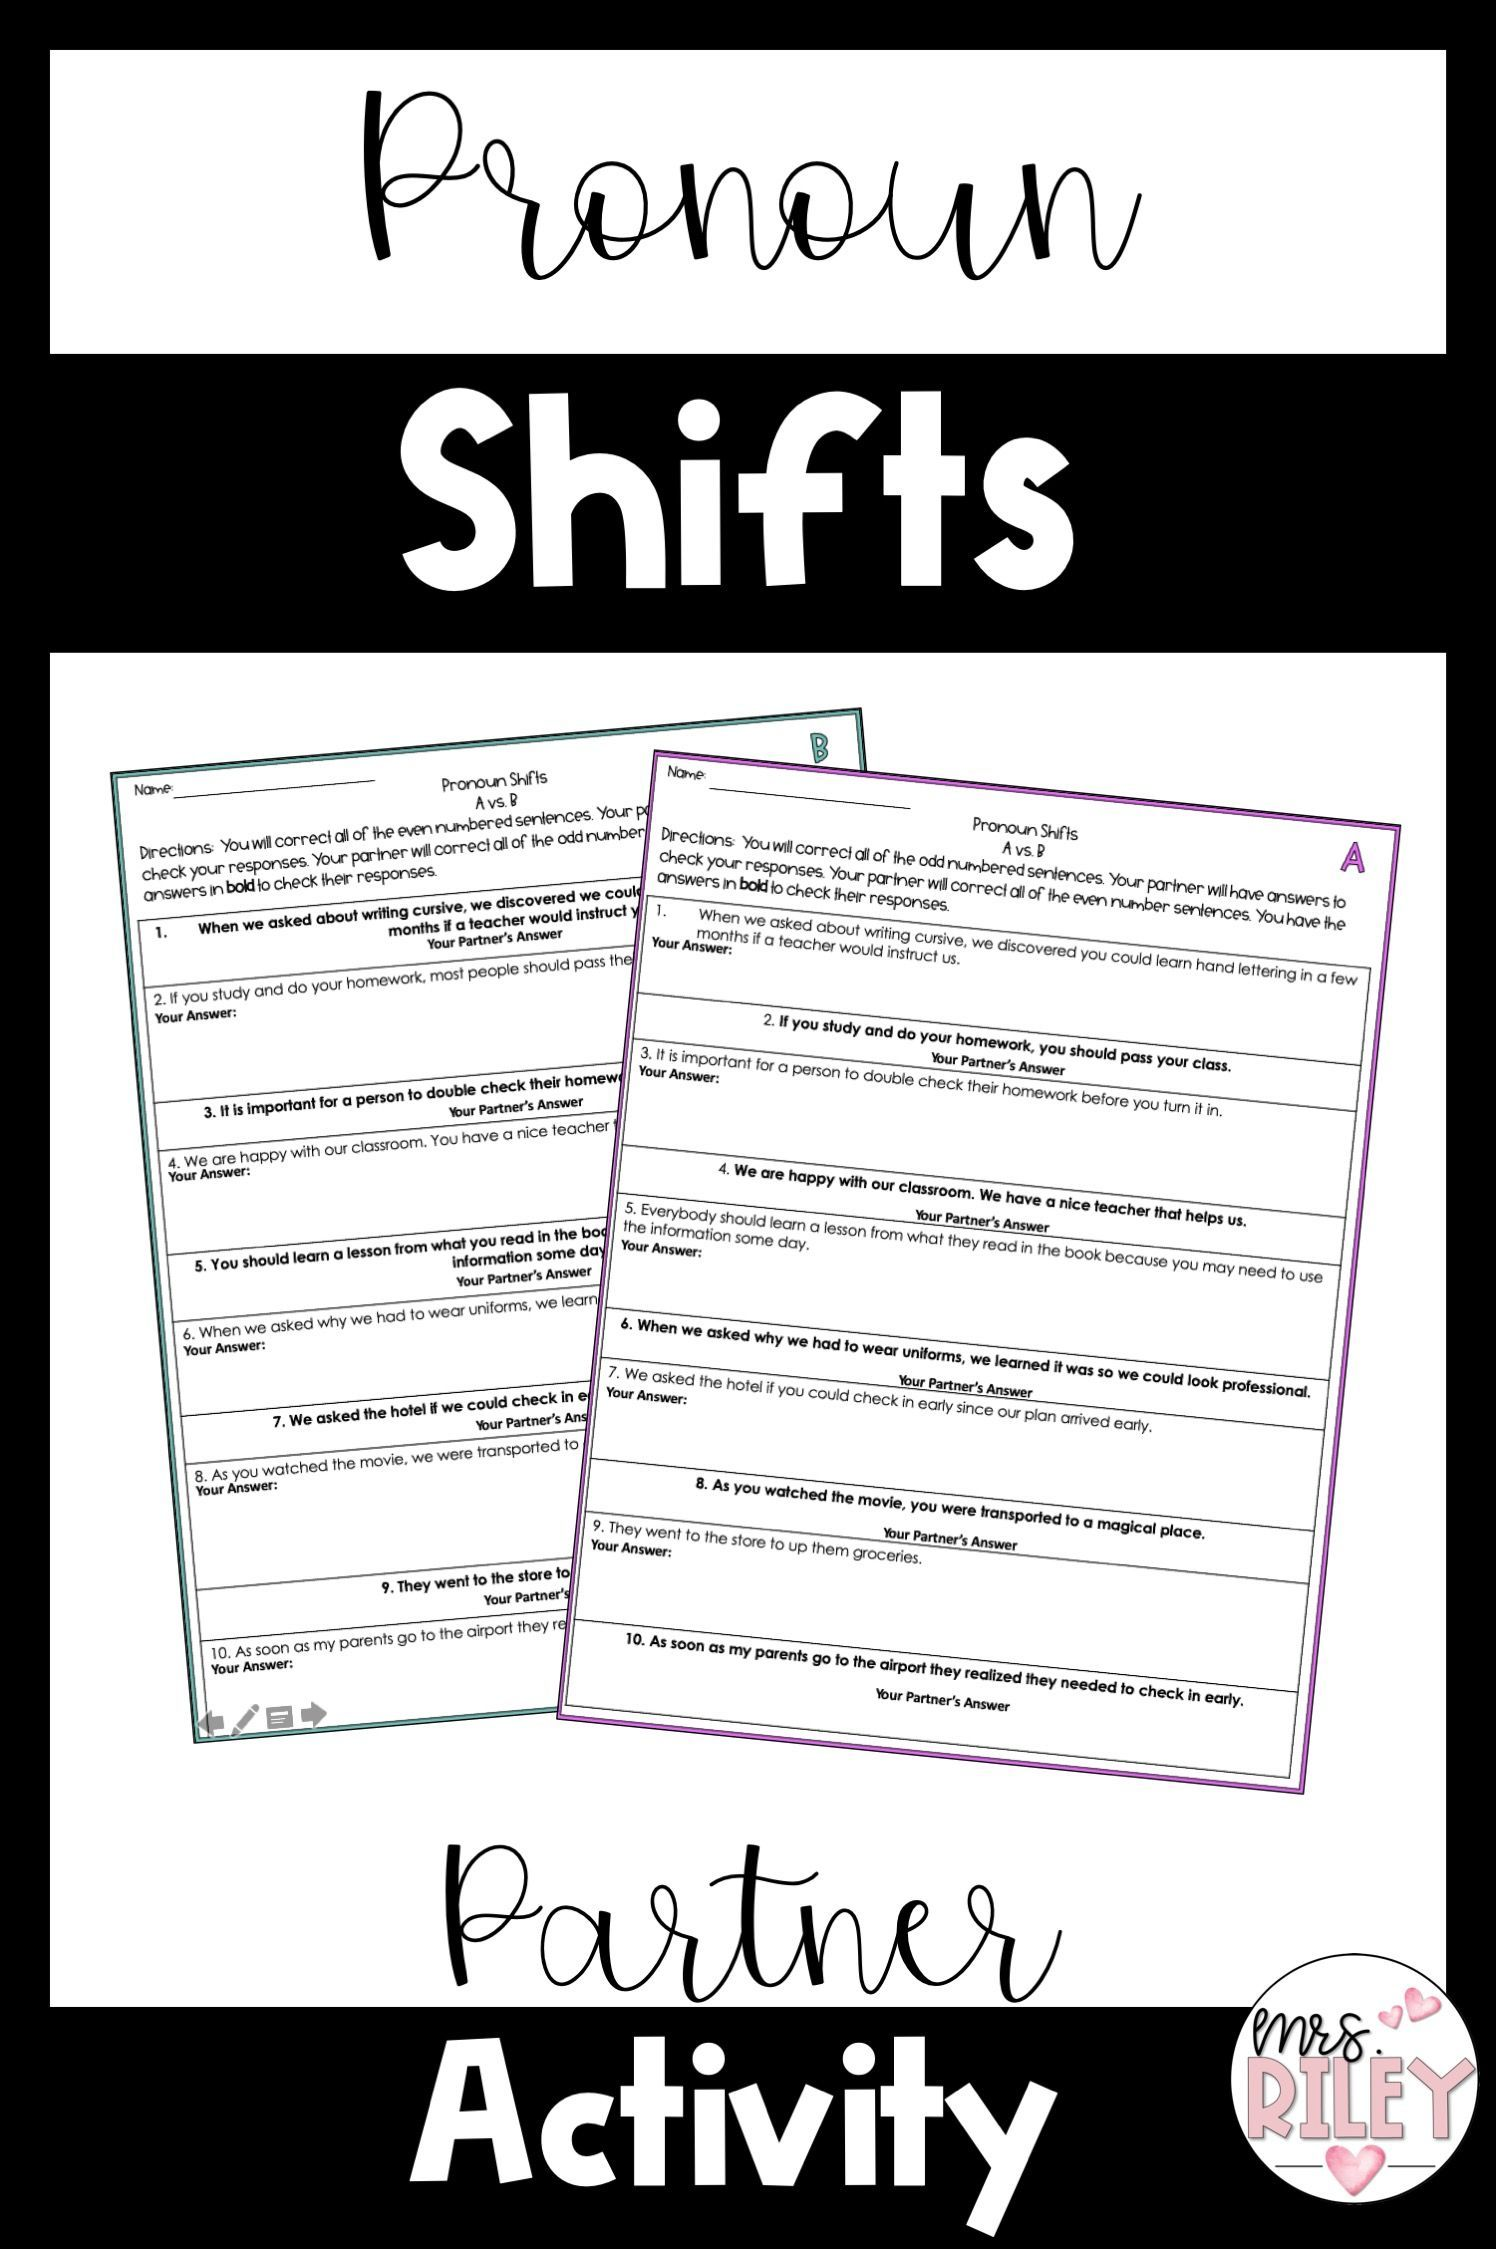 Pronoun Shifts